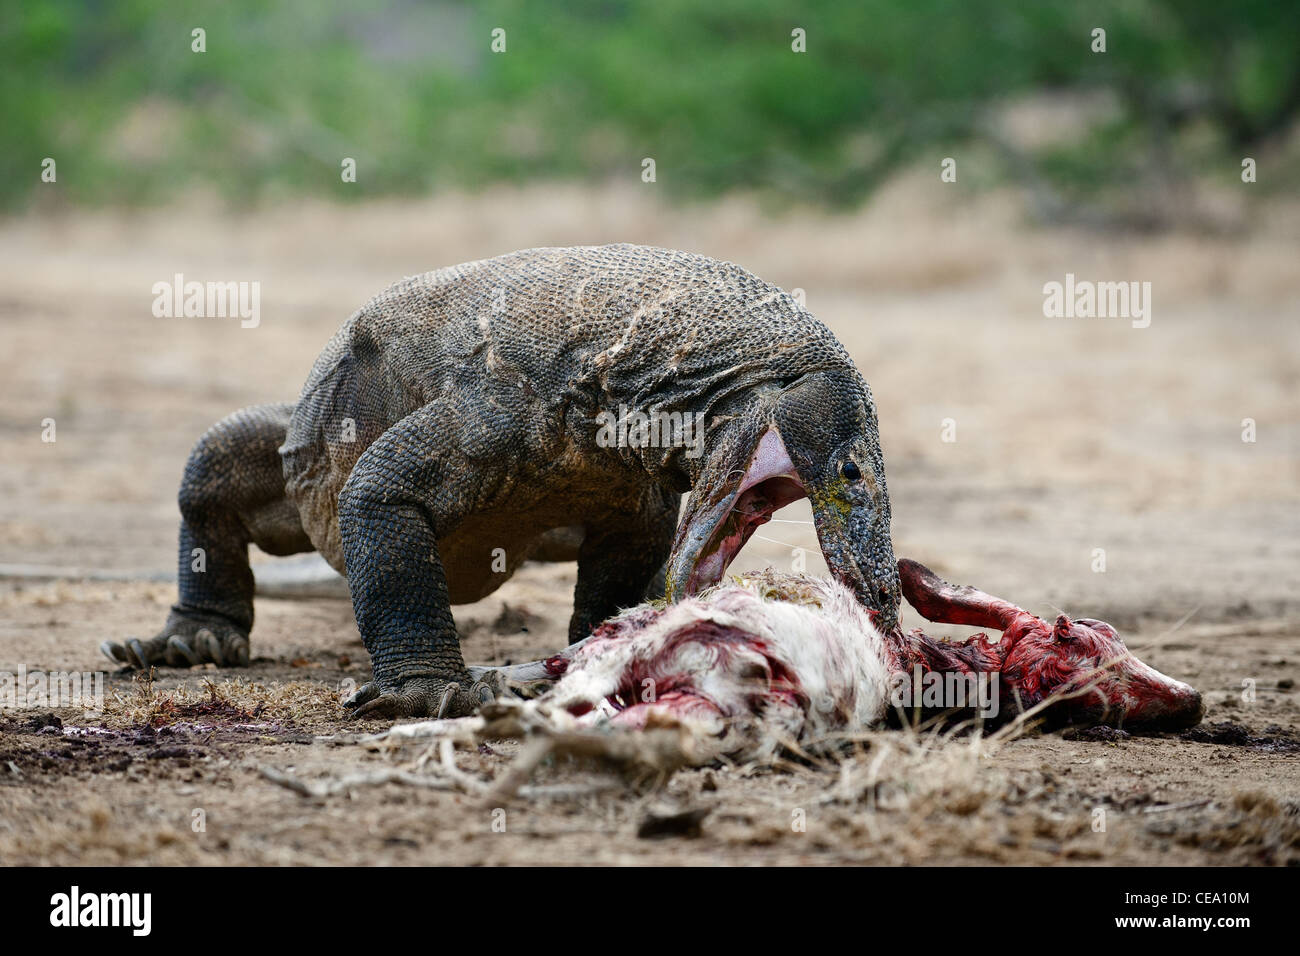 The Komodo dragon eats a victim. - Stock Image